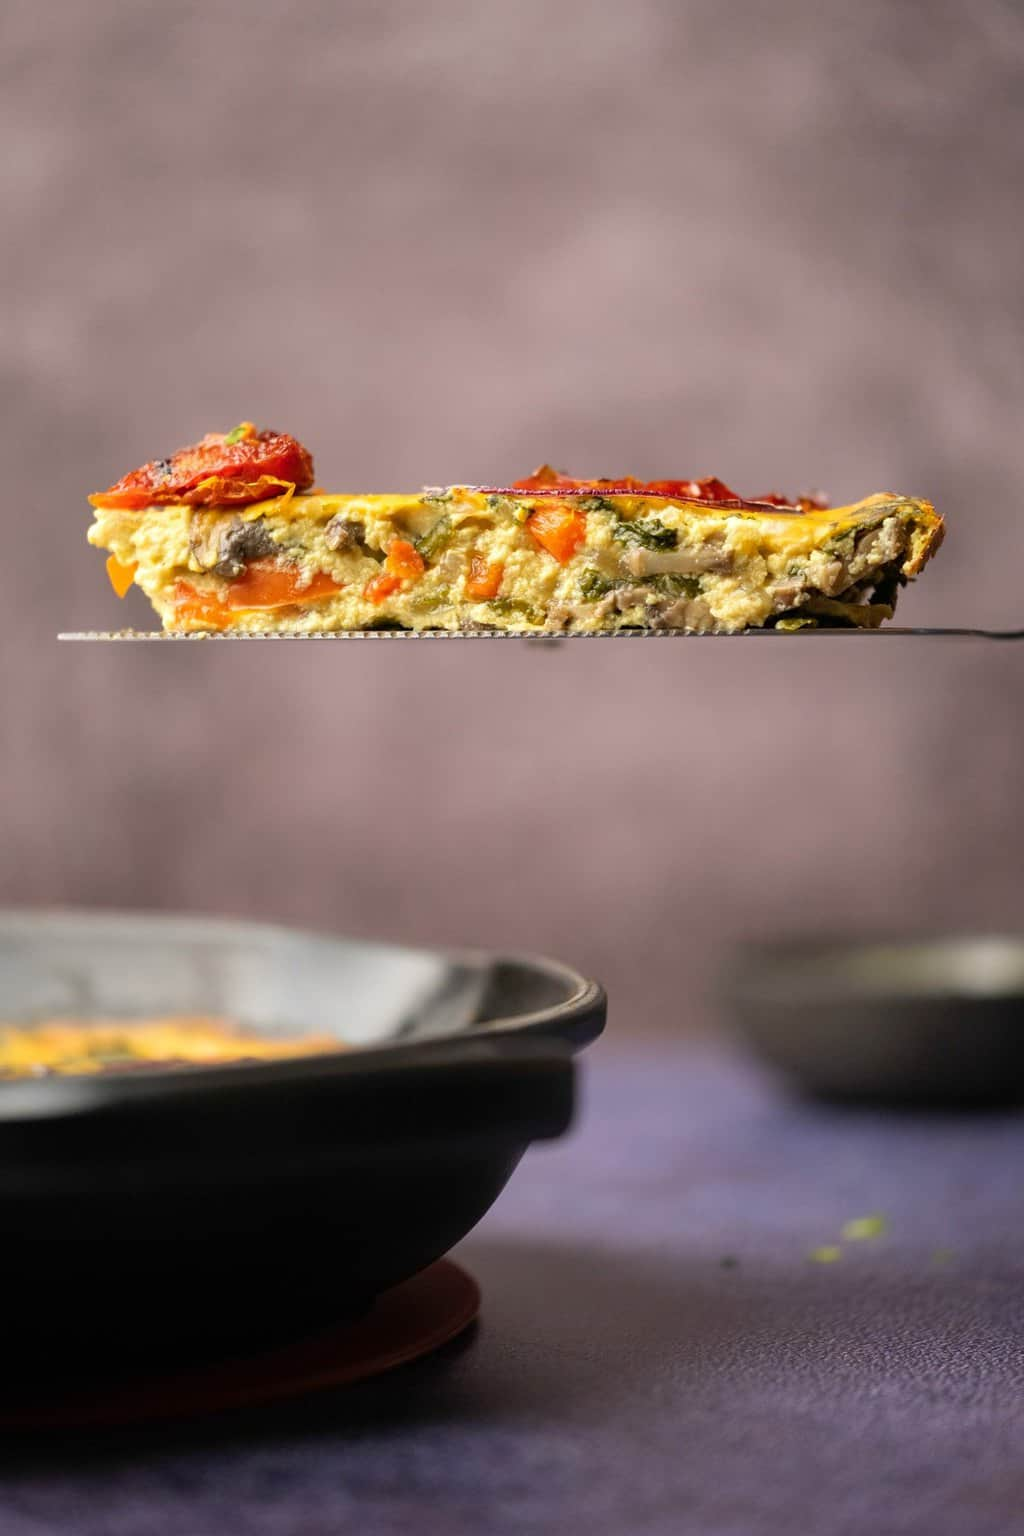 Slice of vegan frittata on a cake lifter.